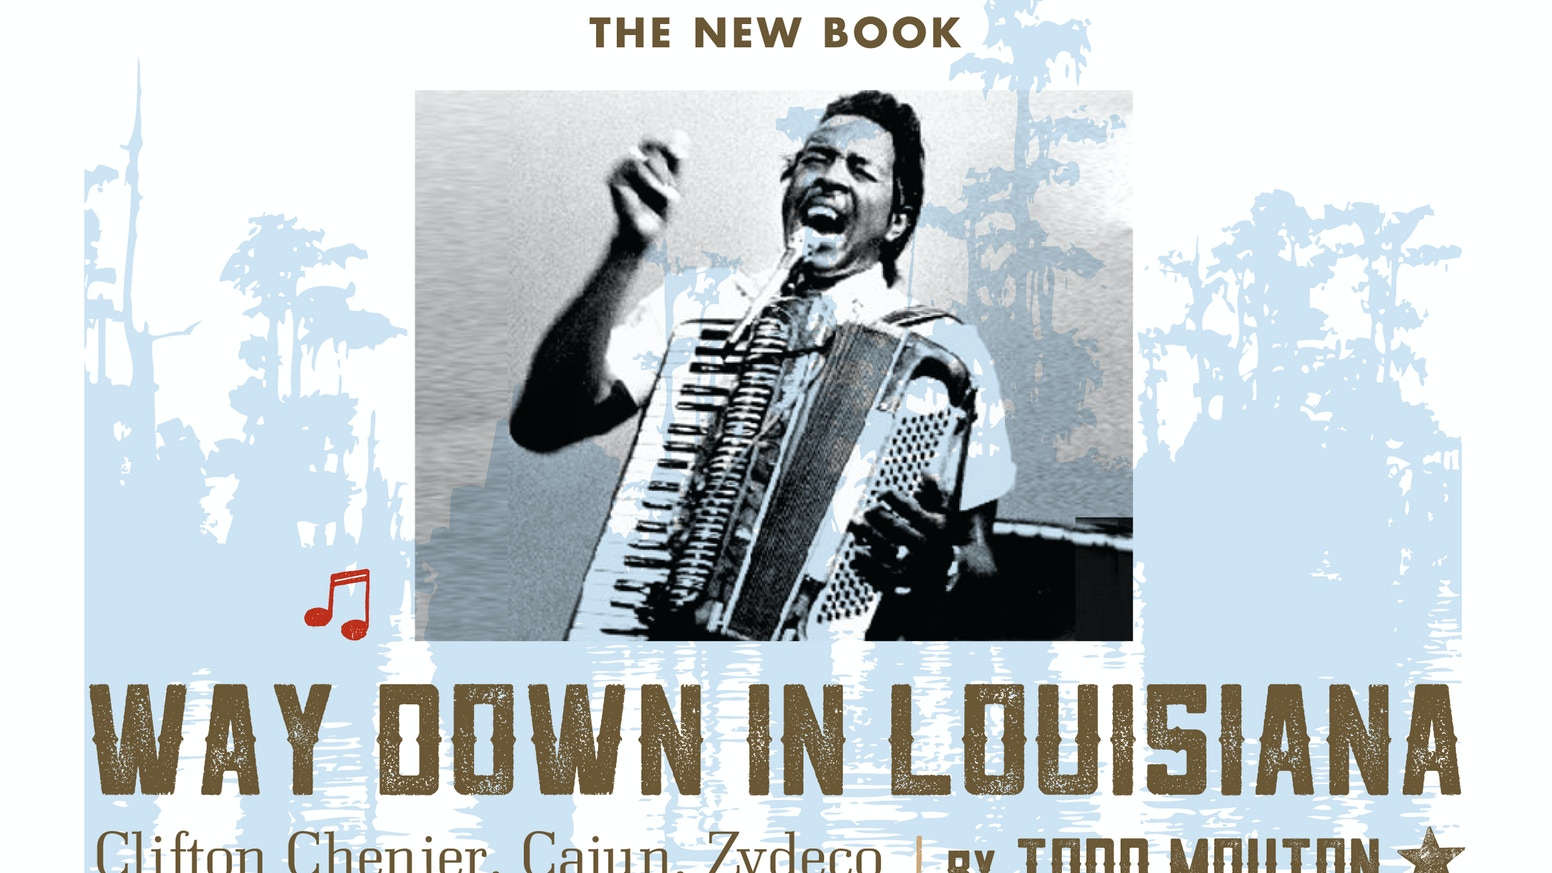 The first-ever musical biography of The King of Zydeco Clifton Chenier wrapped in stories of many great south Louisiana artists! For updates, please visit www.waydowninlouisiana.com and www.facebook.com/waydowninlouisiana